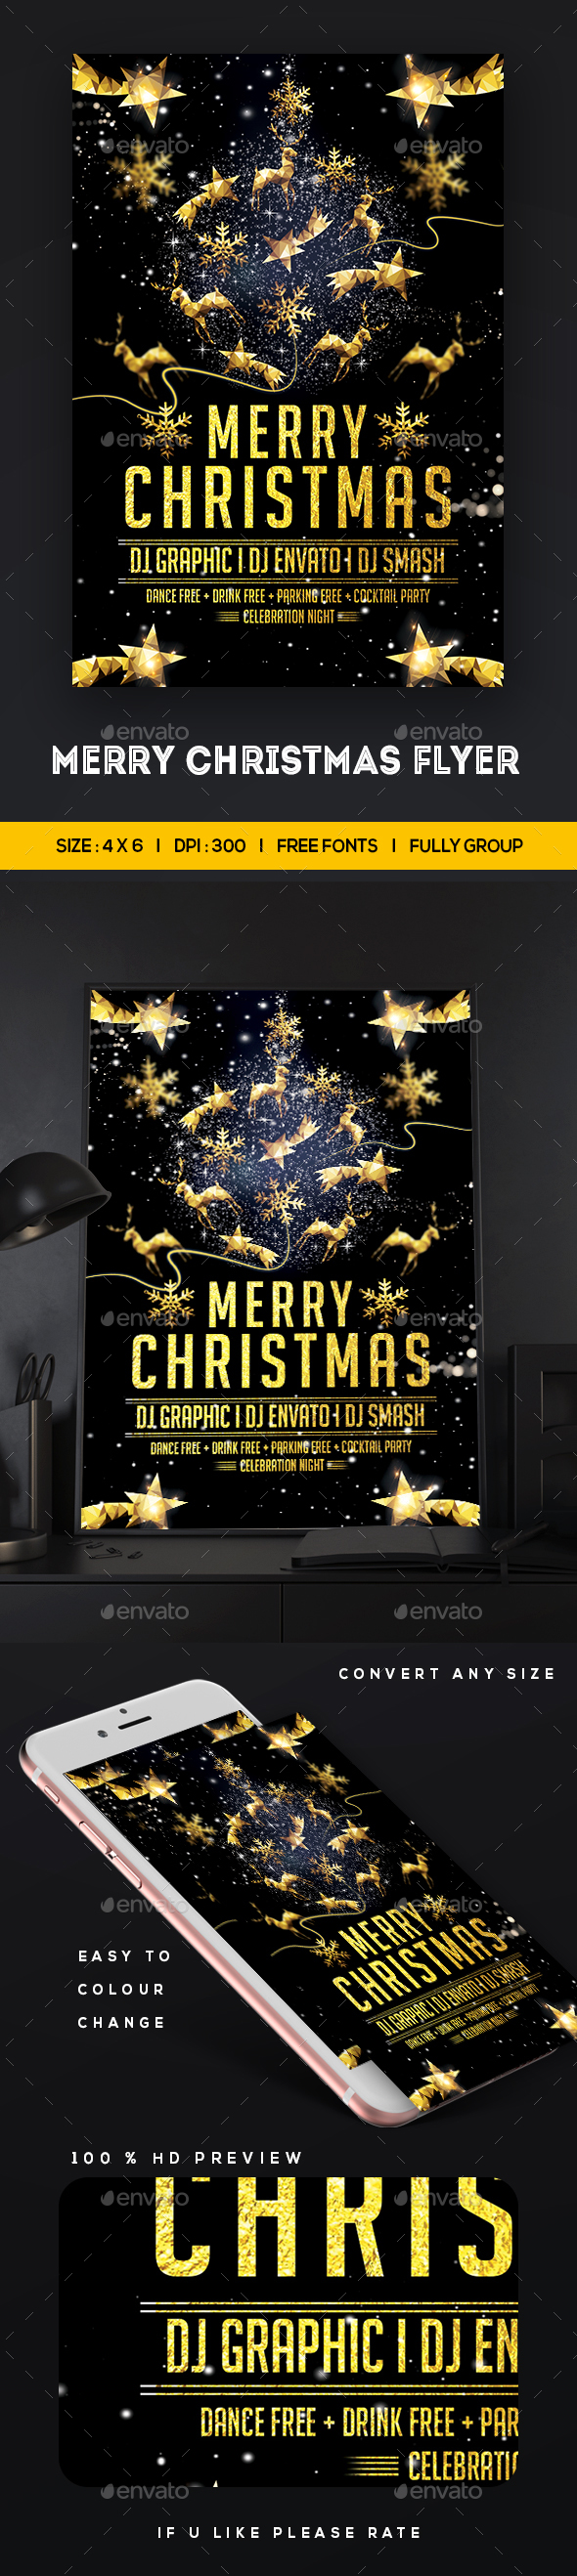 GraphicRiver Merry Christmas Flyer 20944885